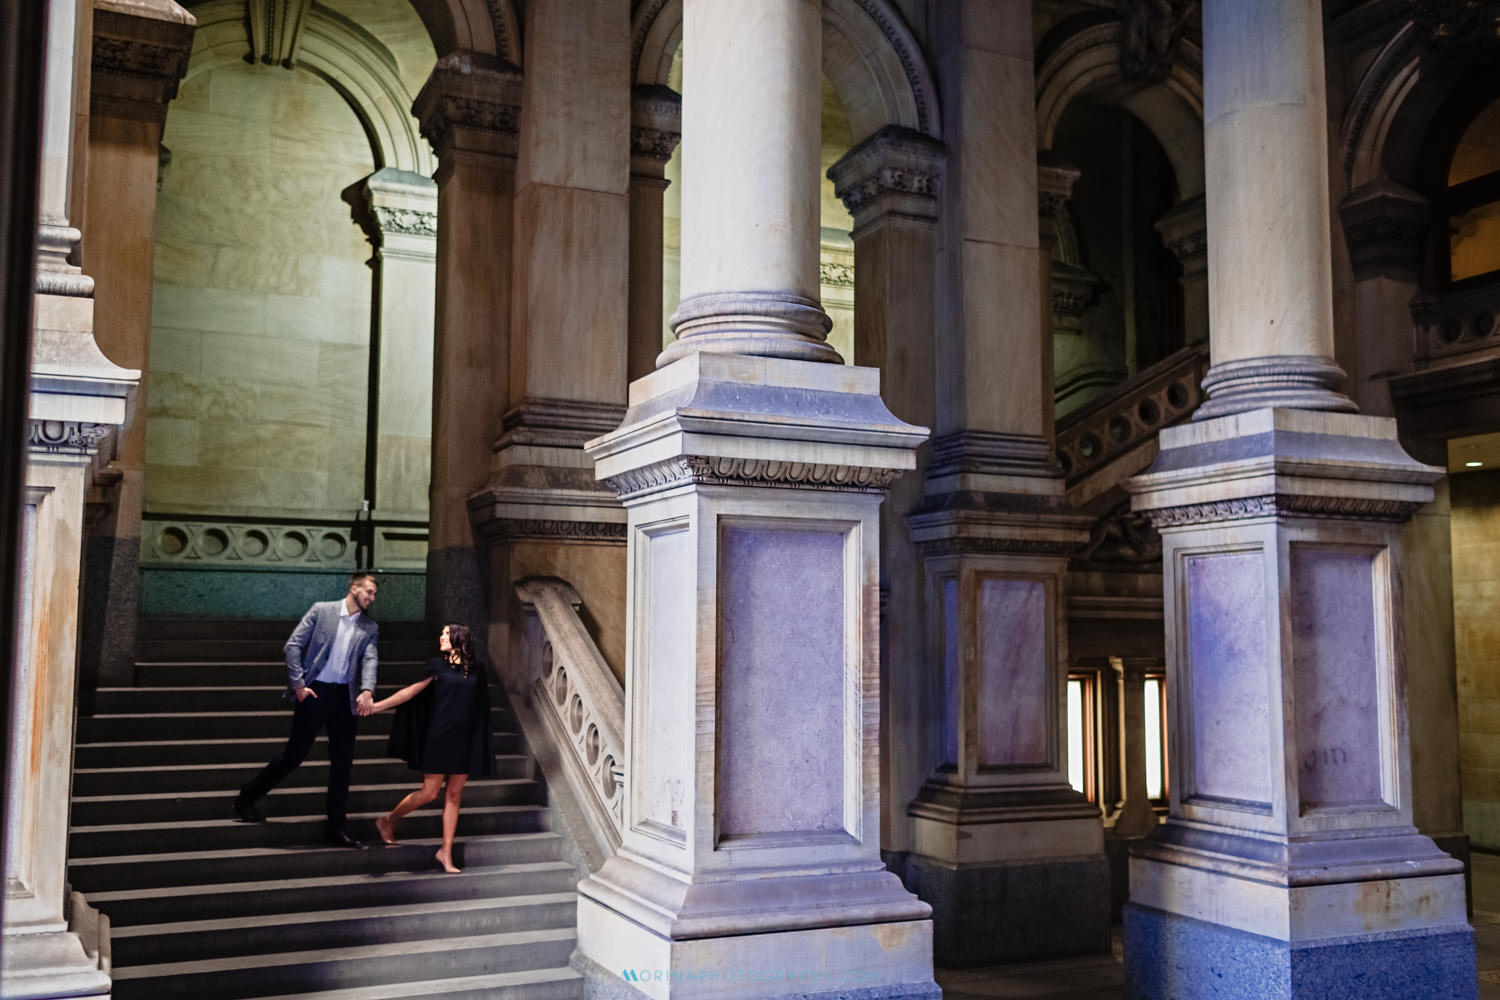 Engagement Session at City Hall in Philadelphia